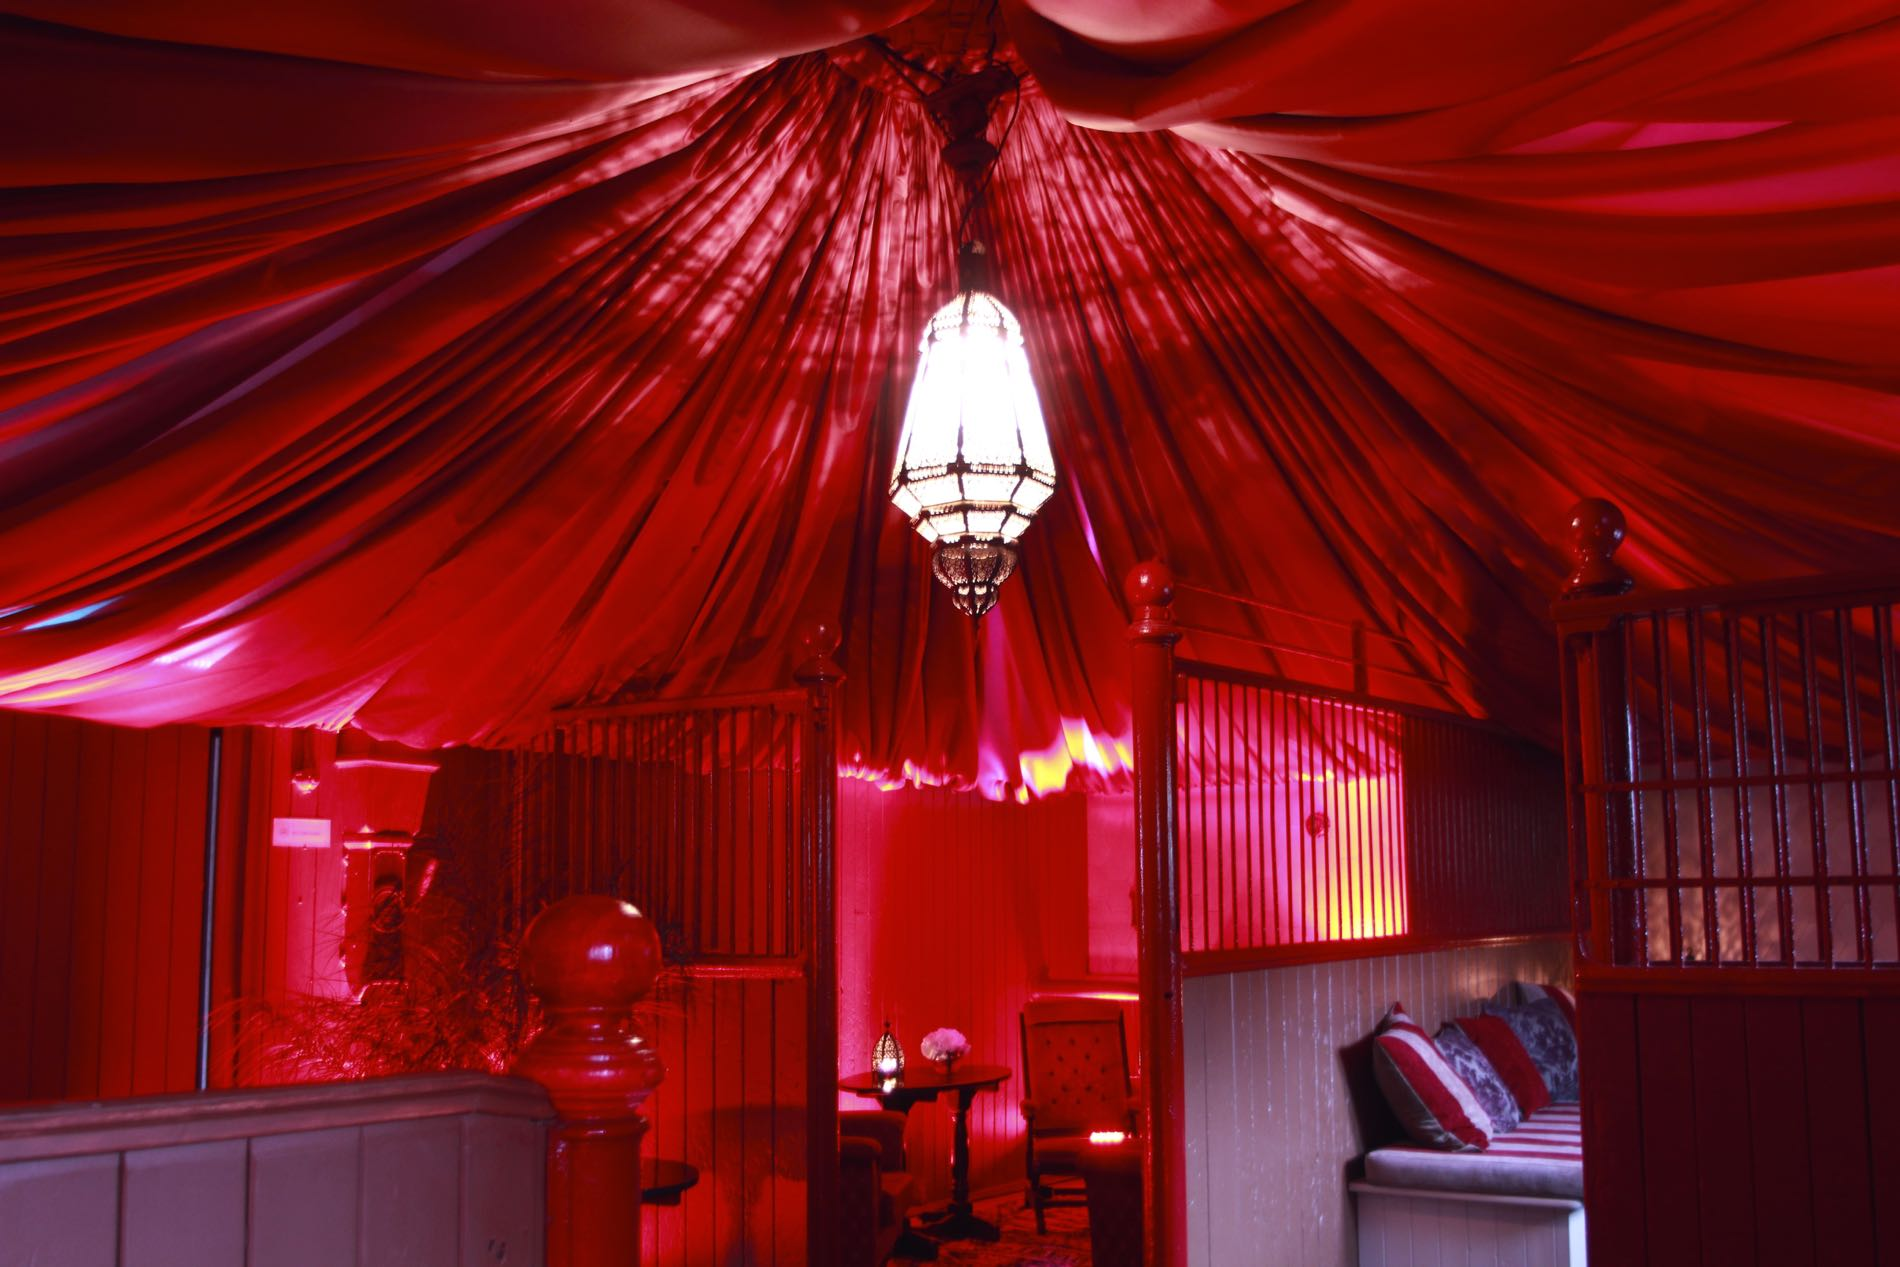 Image of a red canopied ceiling in a stable